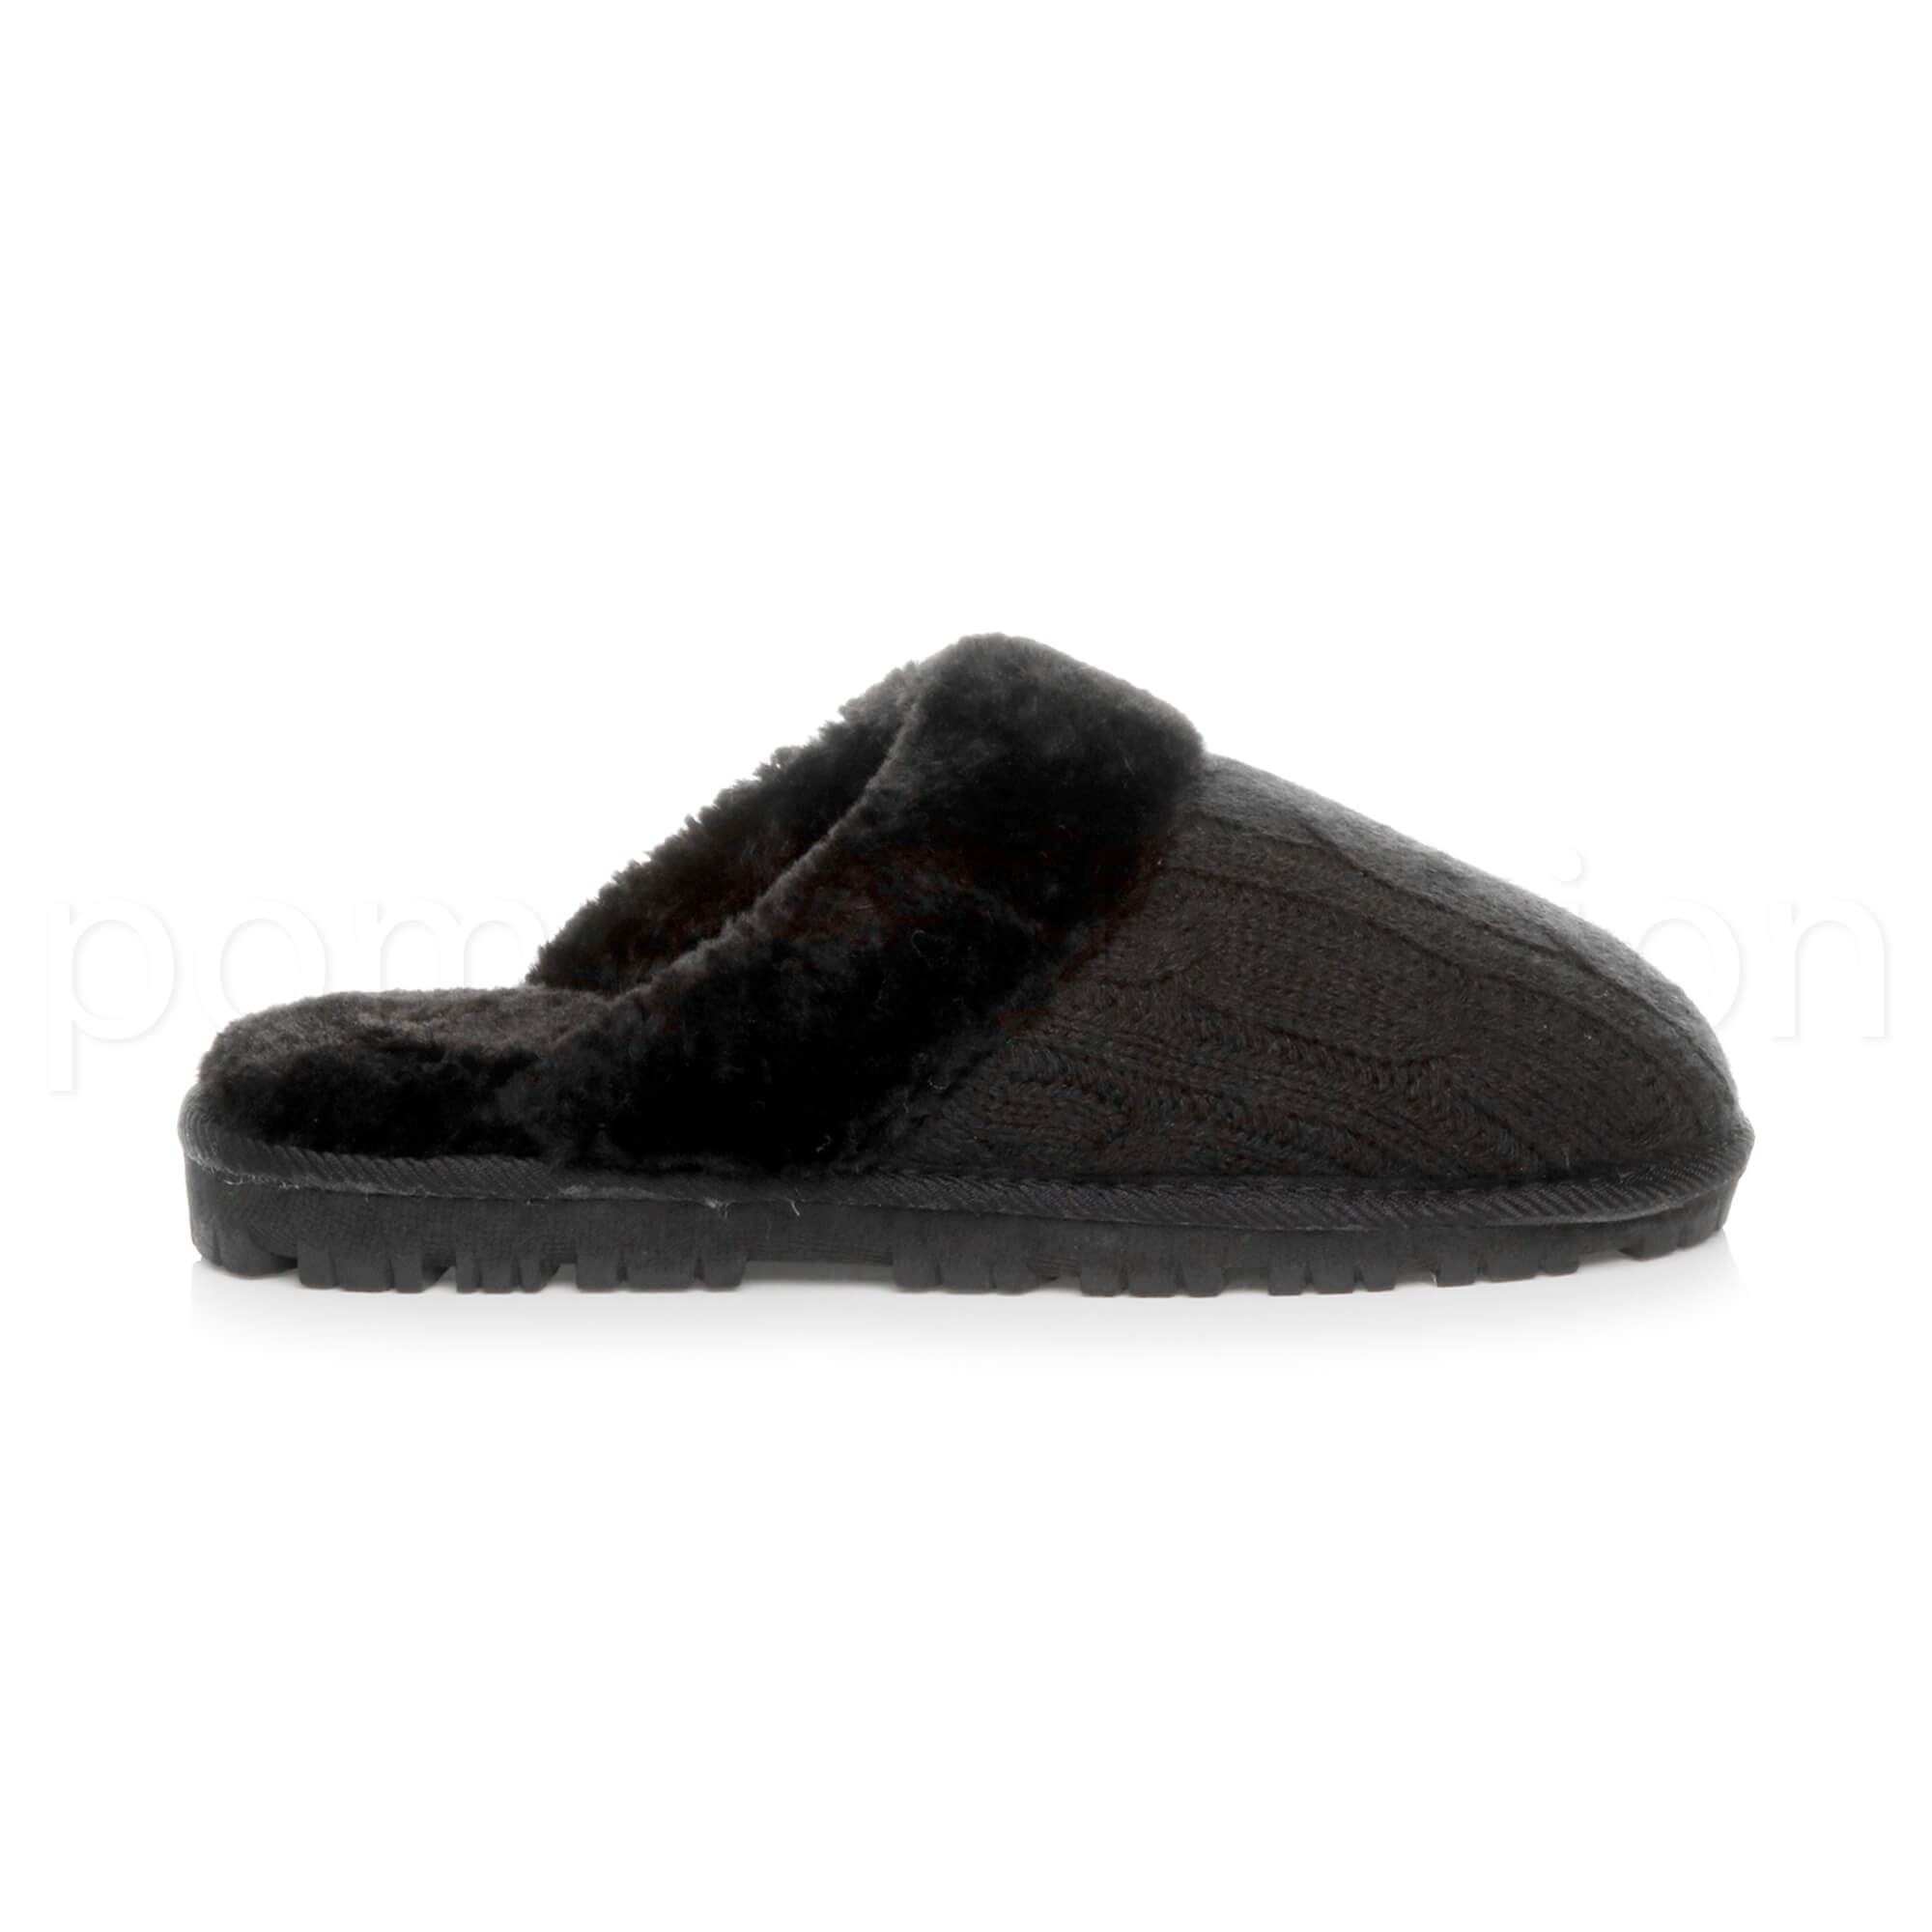 WOMENS-LADIES-FLAT-FUR-LINED-COMFORTABLE-WINTER-MULES-SLIPPERS-HOUSE-SHOES-SIZE thumbnail 31